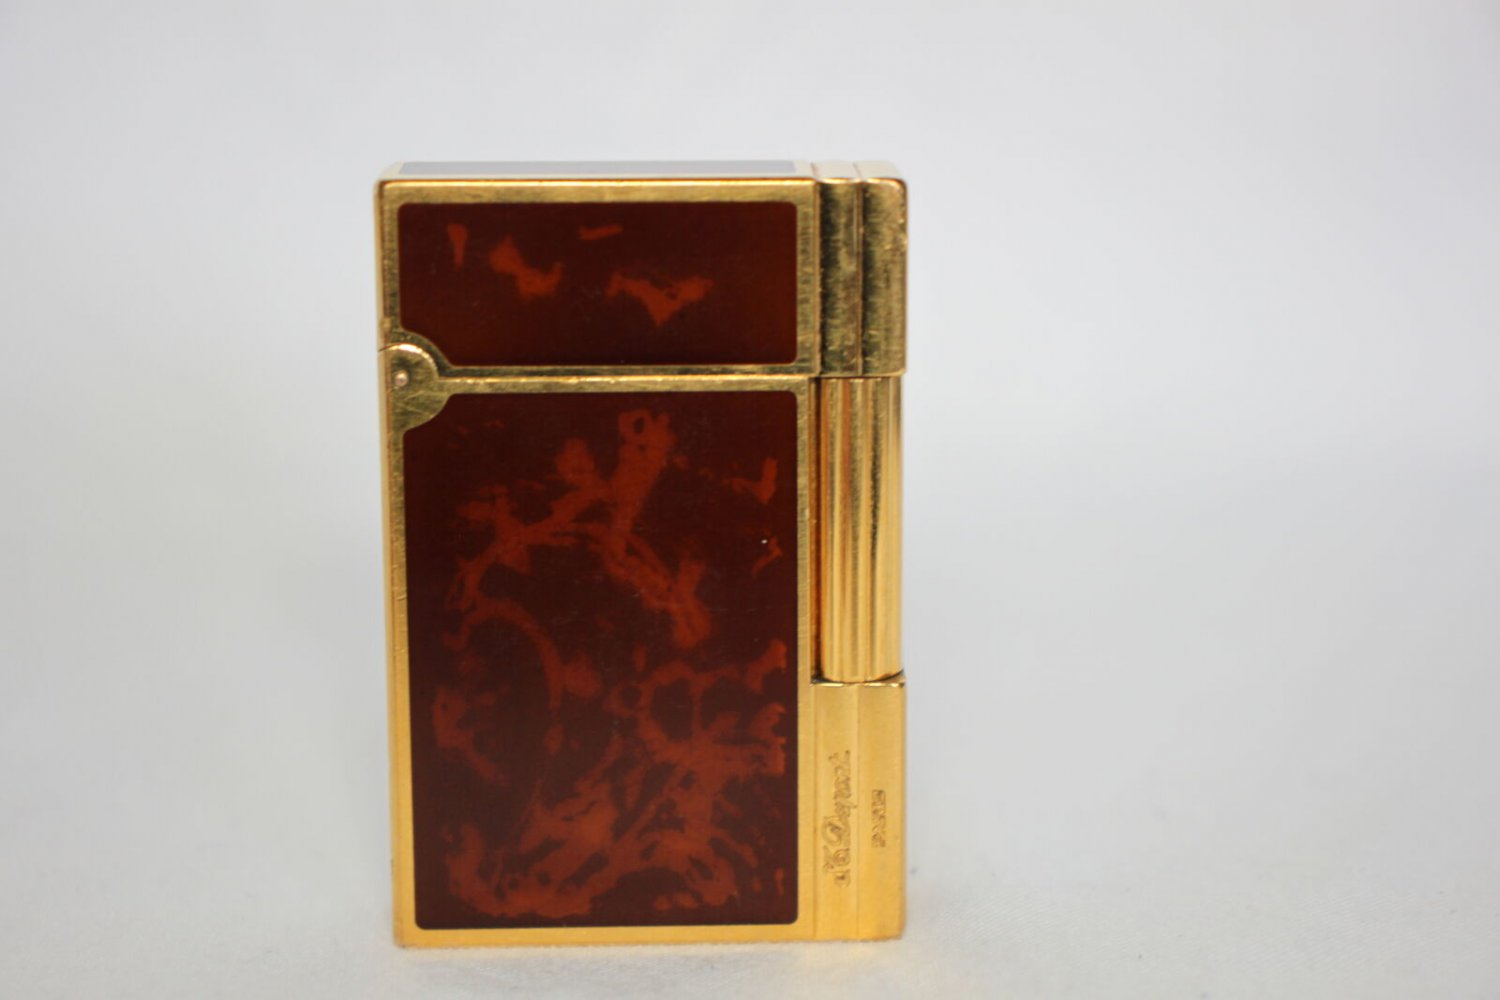 S.T. Dupont Ligne 2 Lighter, Chinese lacquer, Gold trim, Brown